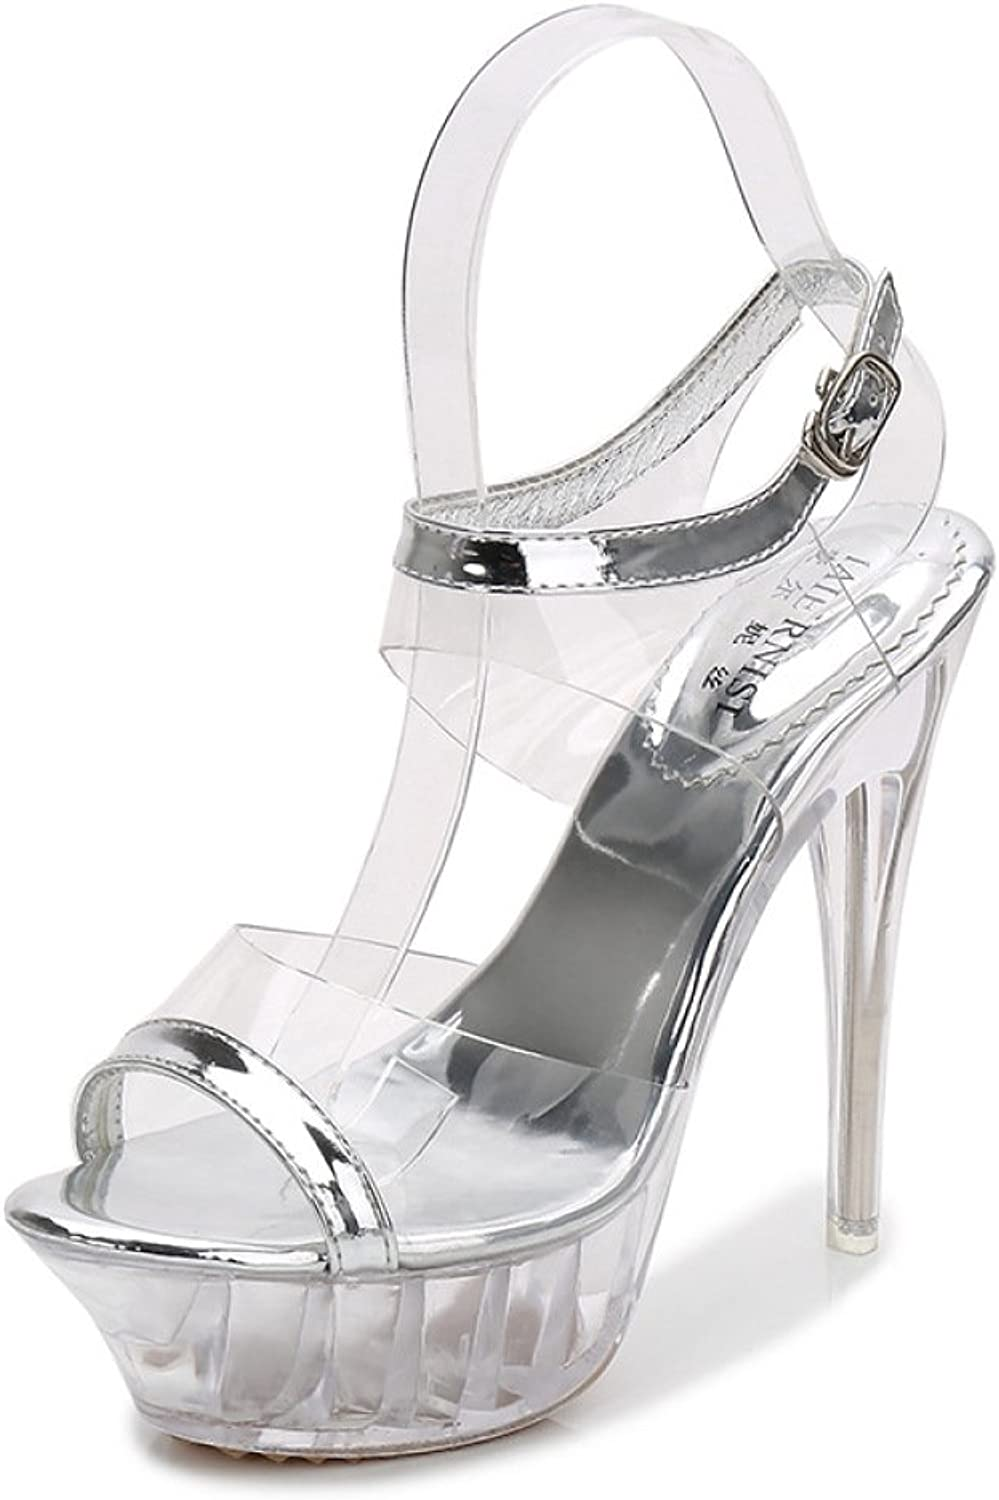 LINYI Women's Stiletto Heels Model High Heels Transparent shoes Platform Sandals Catwalk Show